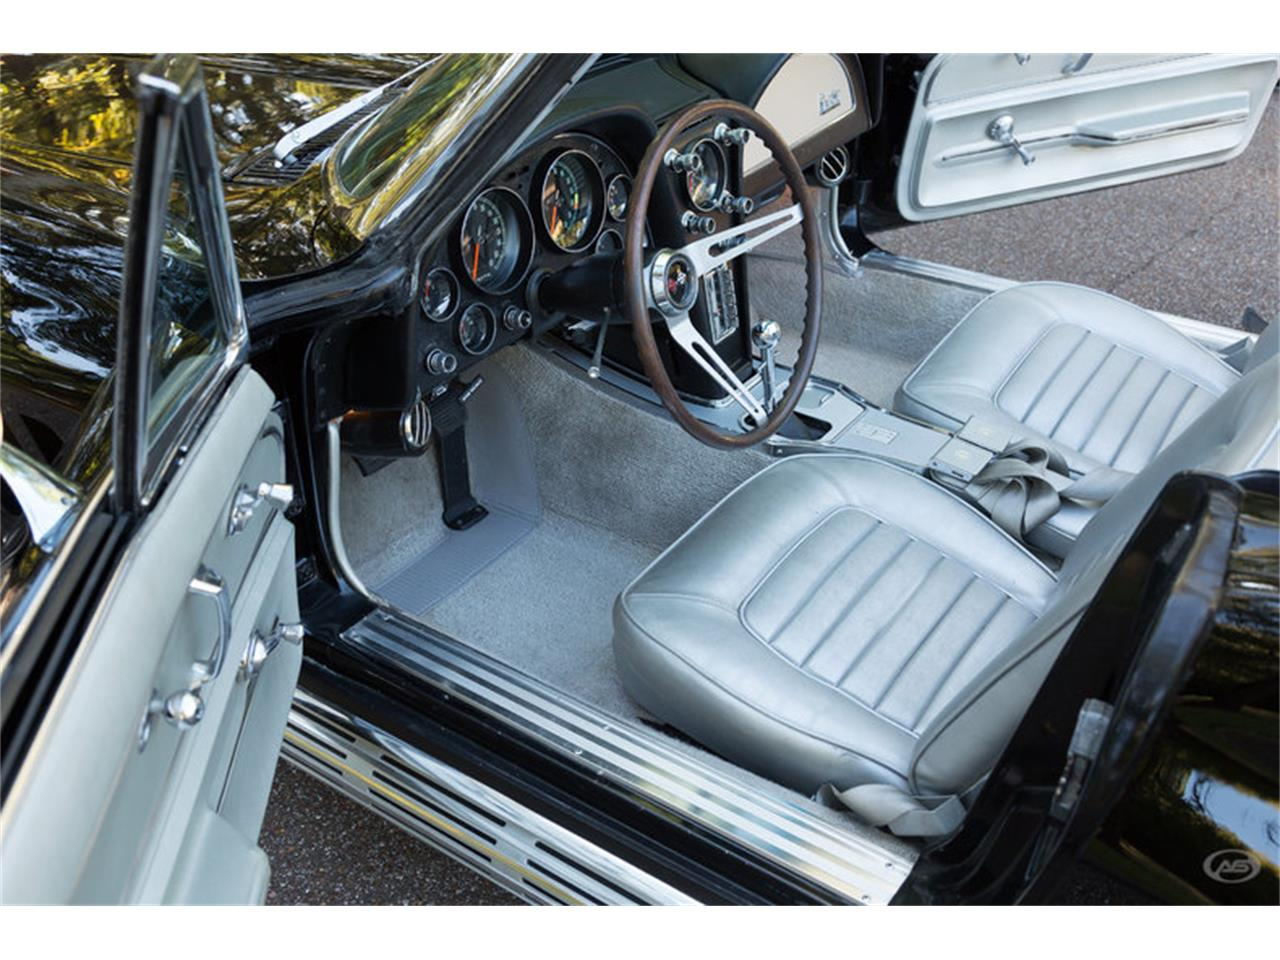 Large Picture of Classic '66 Corvette located in Collierville Tennessee - $73,900.00 - JMLY